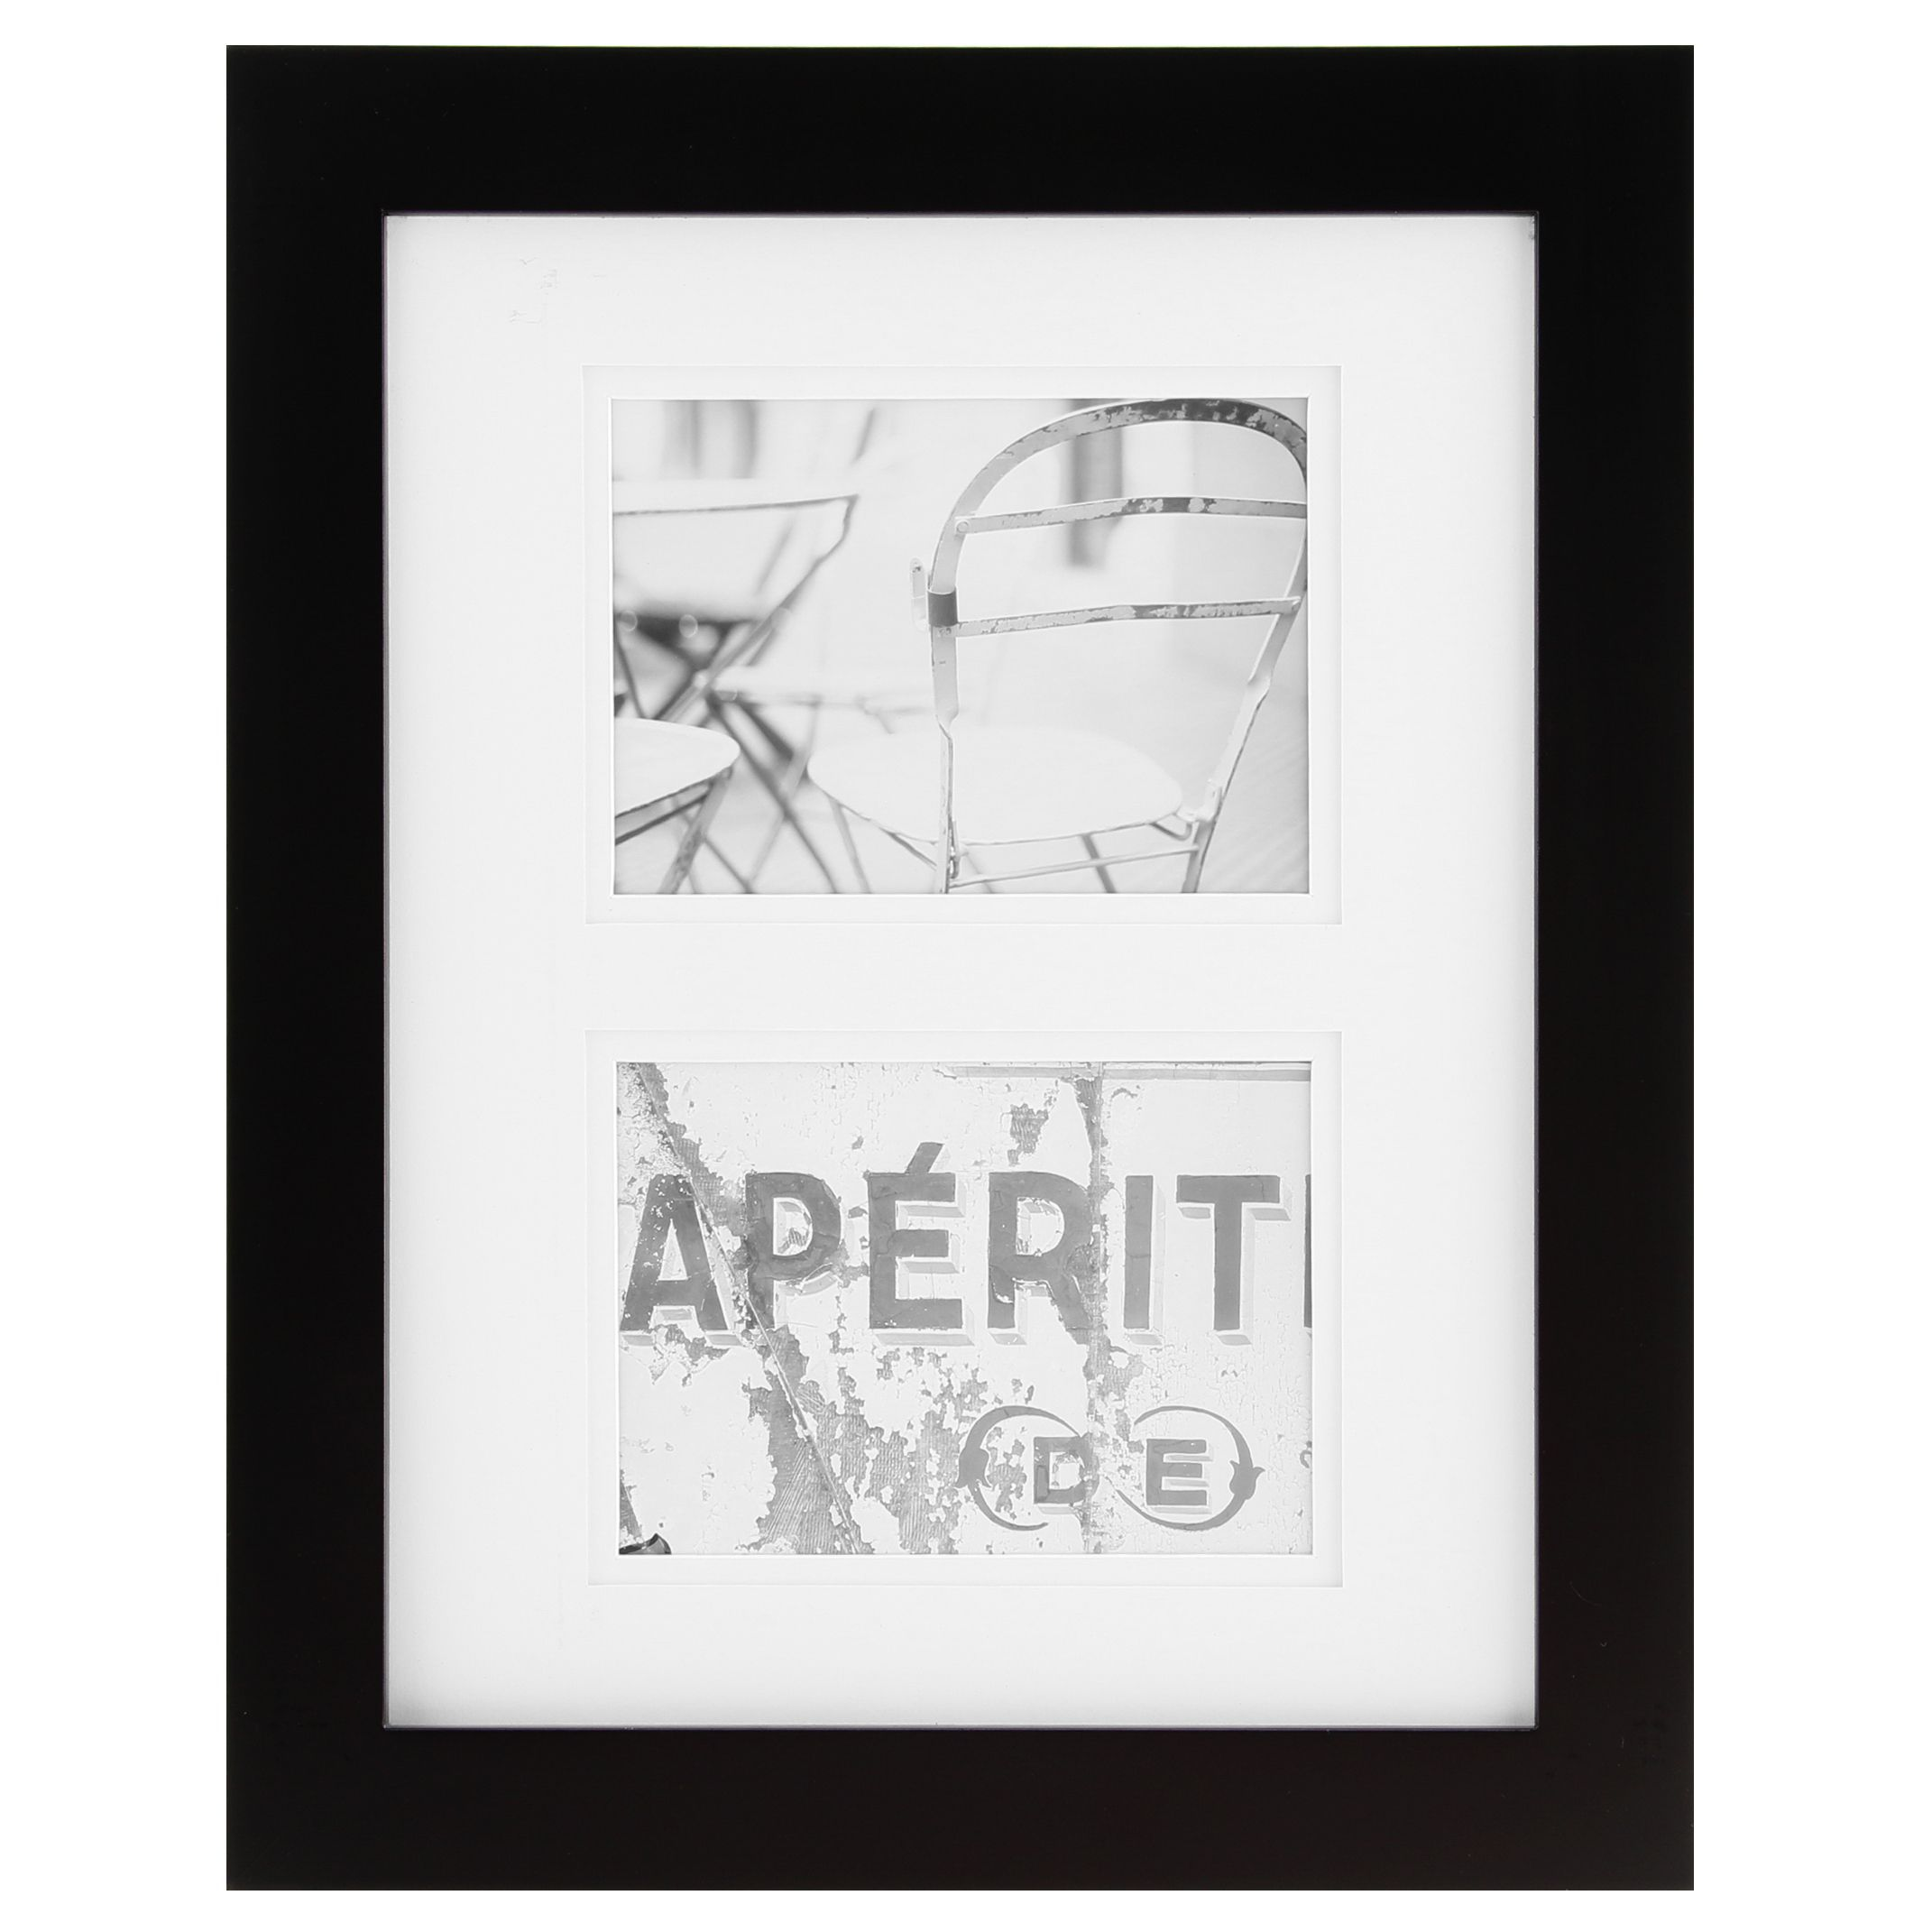 Gallery Solutions Black Wood Matted Frame (11x14/5x7) | Black wood ...